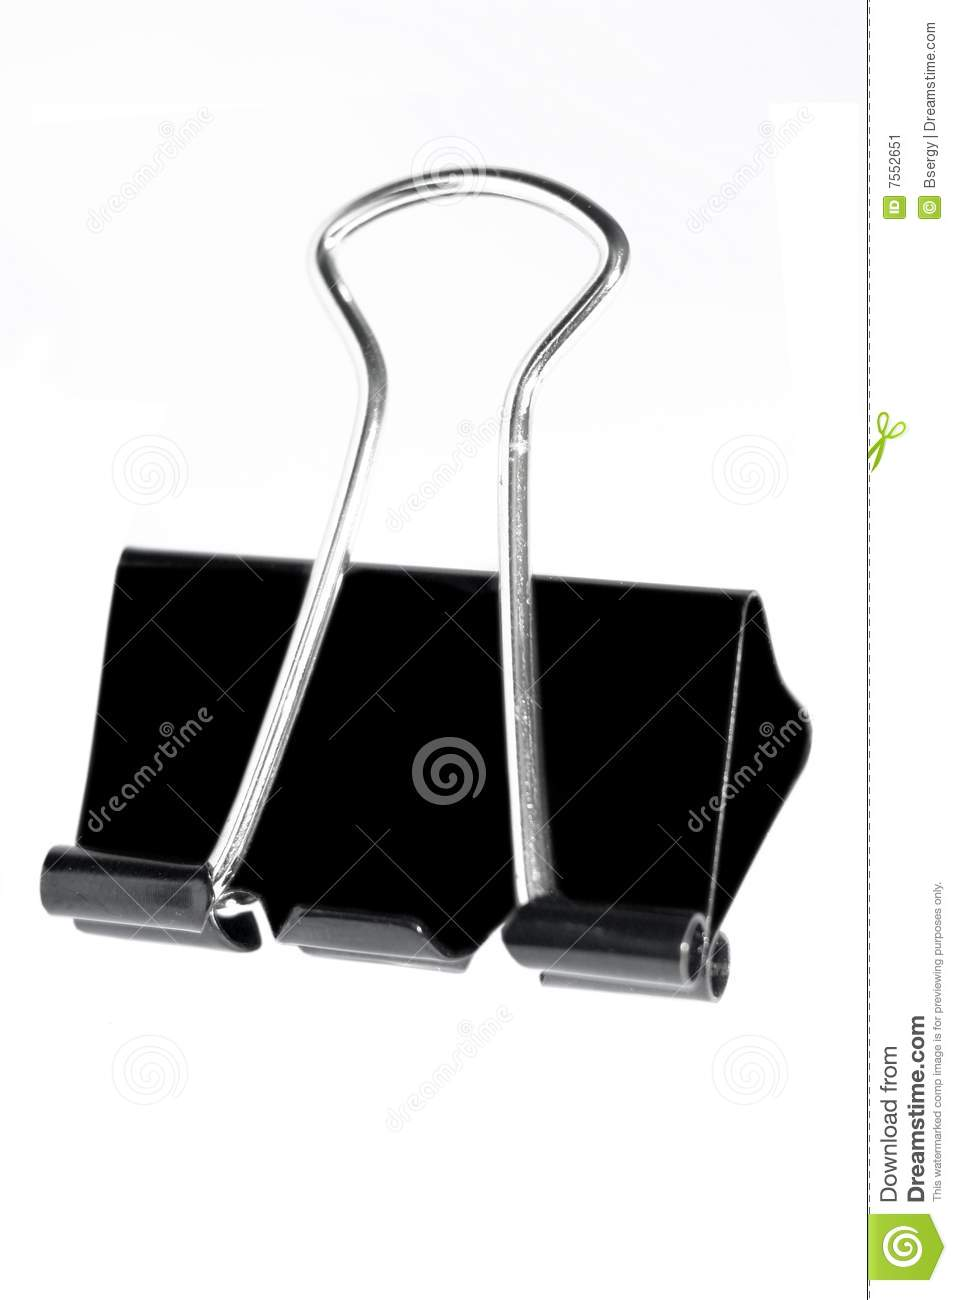 black metal paper clip stock image image of clamp device 7552651